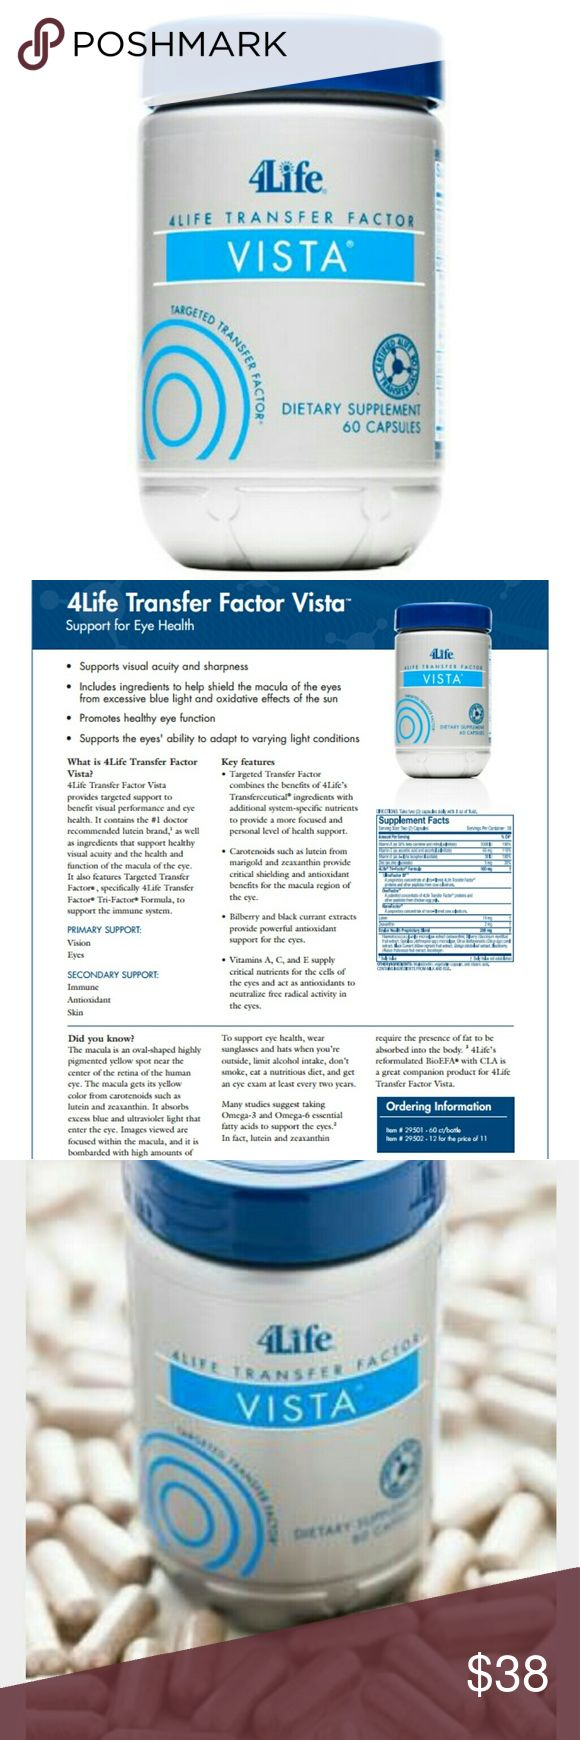 4Life Transfer Factor VISTA Support For Eye Health Maintains visual acuity and sharpness. Includes ingredients to help reduce the oxidative effects of the sun or of excessive blue light exposure on the macula of the eyes. Promotes healthy eye function. Supports the ability to adapt to varying light conditions. 60 Capsules. Exp 07/2018 4Life Transfer Factor Other